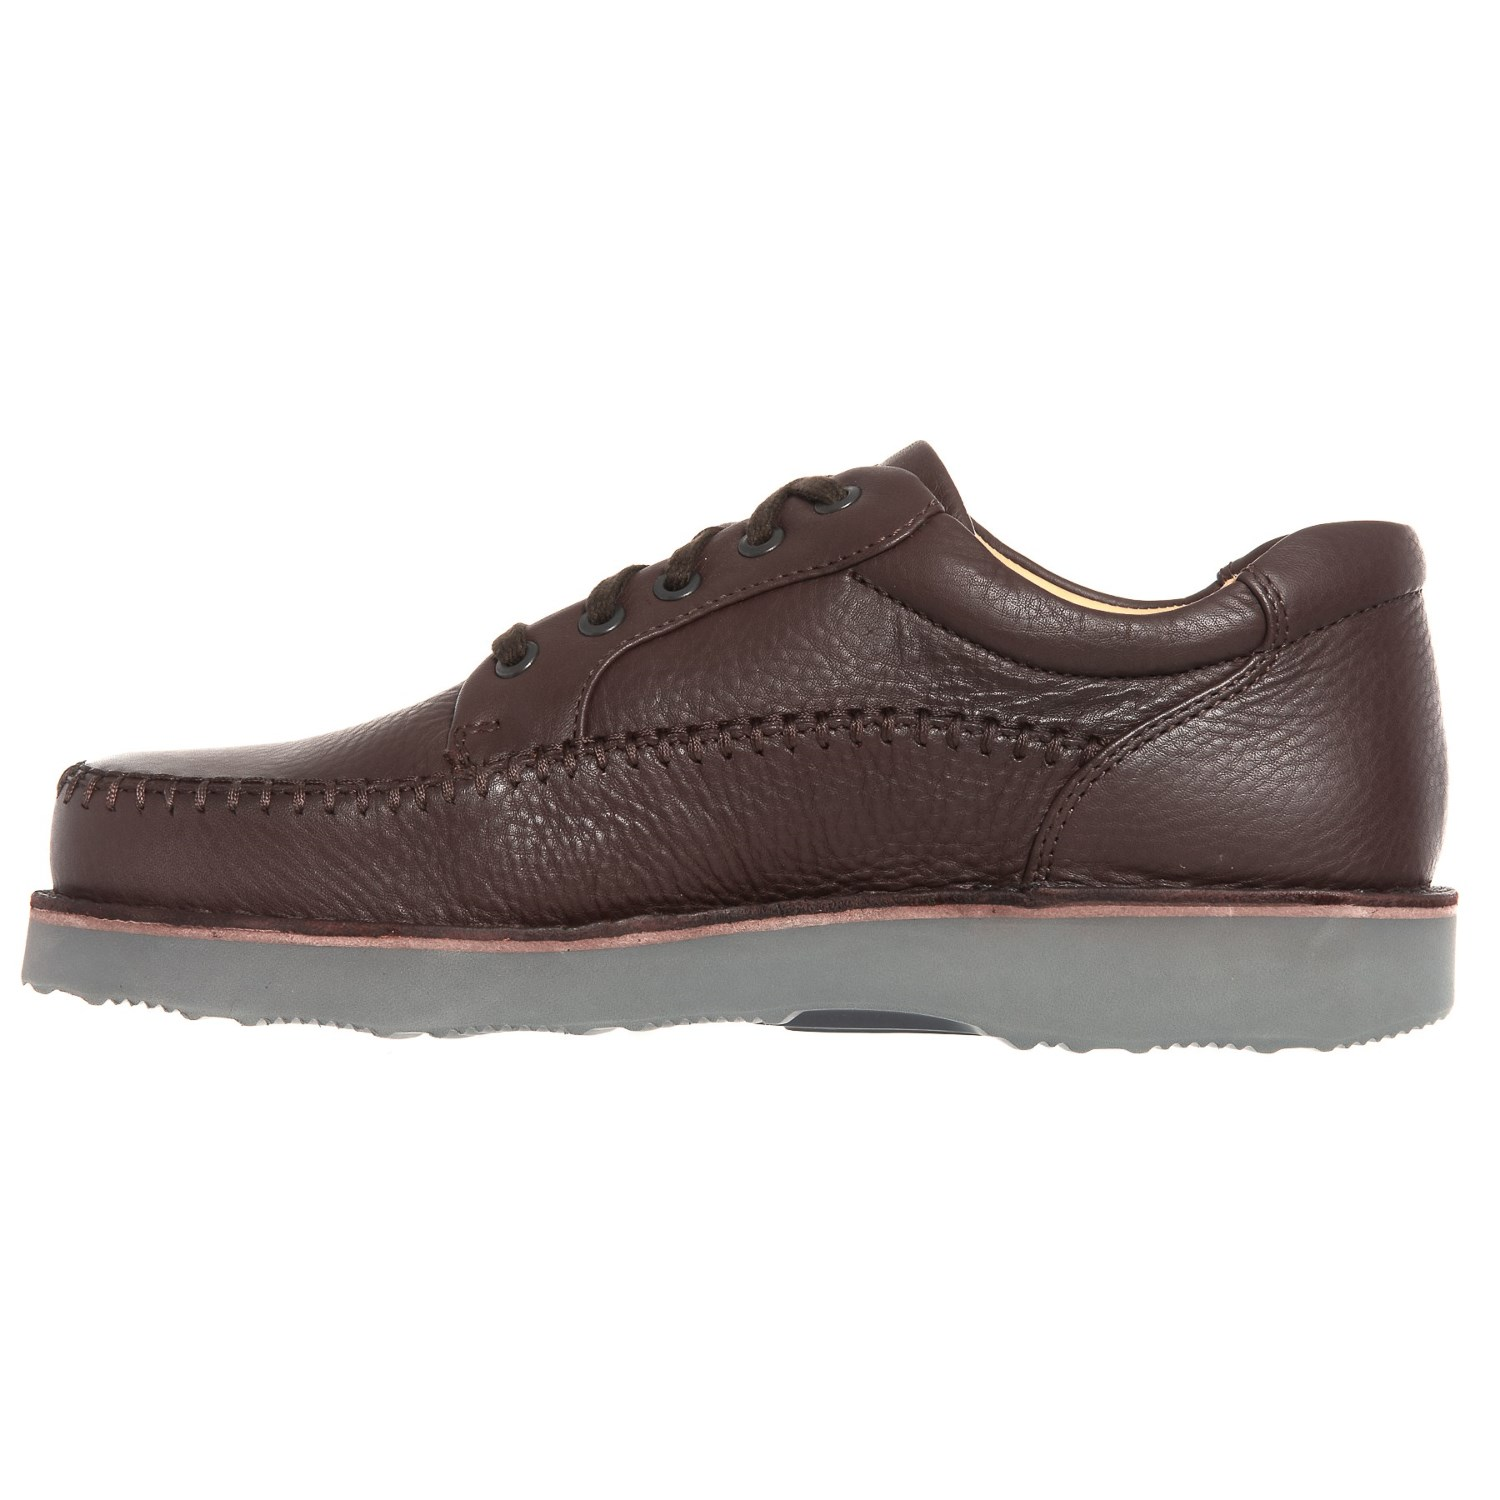 bb5b65743ec Samuel Hubbard Made in Portugal Get-Up Lace-Up Oxford Shoes - Leather (For  Men)